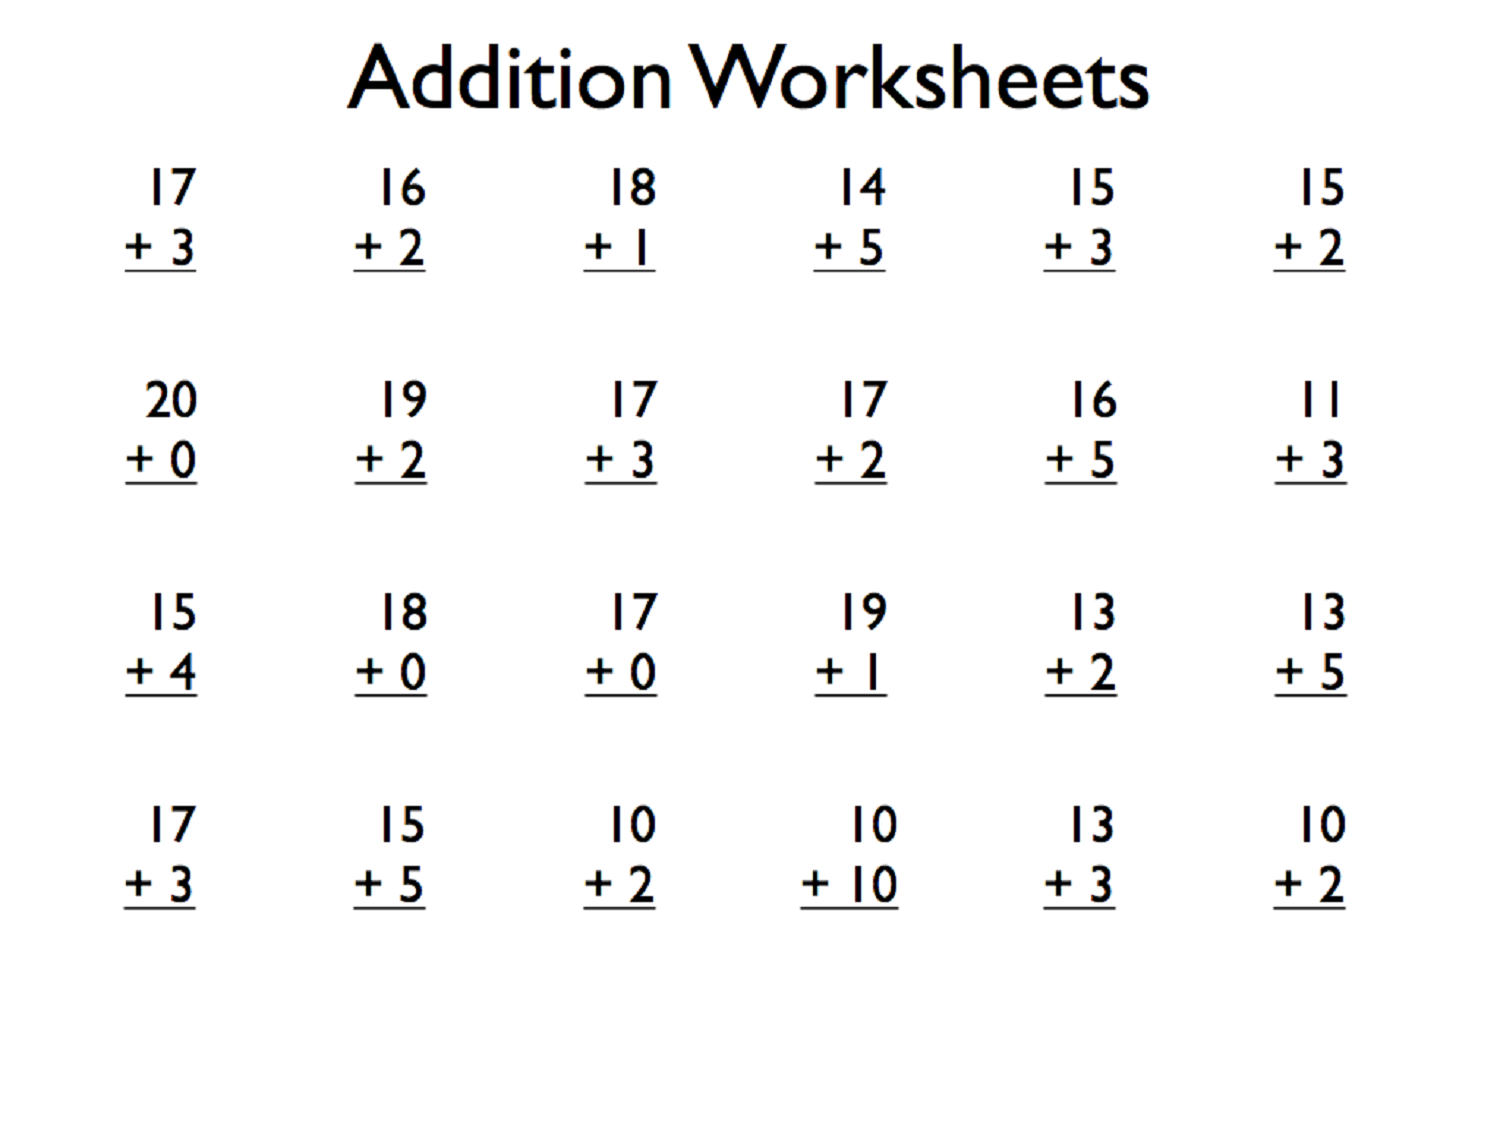 Printable Addition Worksheets for Kids | Learning Printable